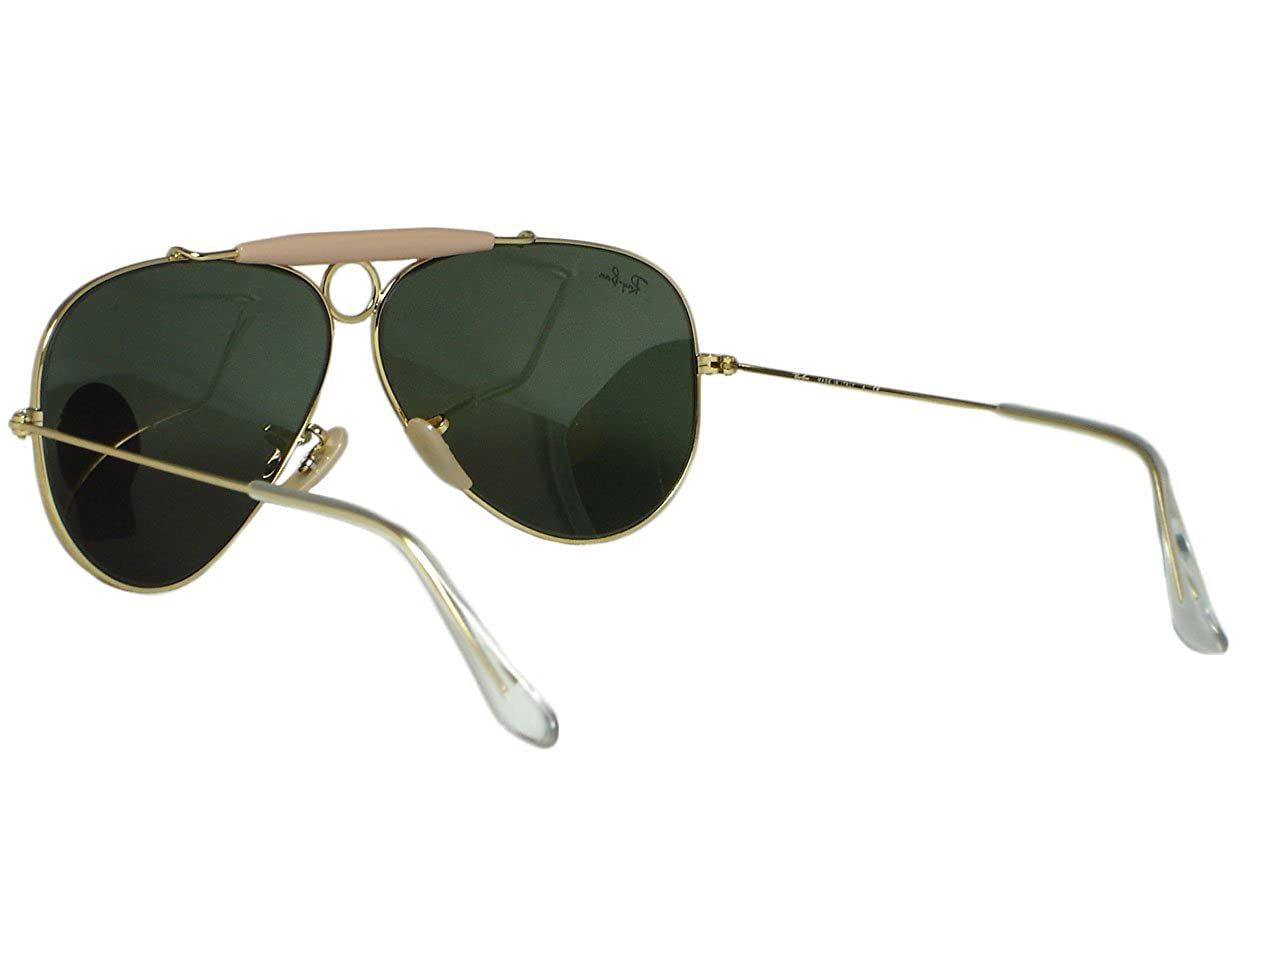 63fedc01be5 Amazon.com  Ray Ban RB3138 shooter 001 Gold Sunglasses 62mm  Clothing